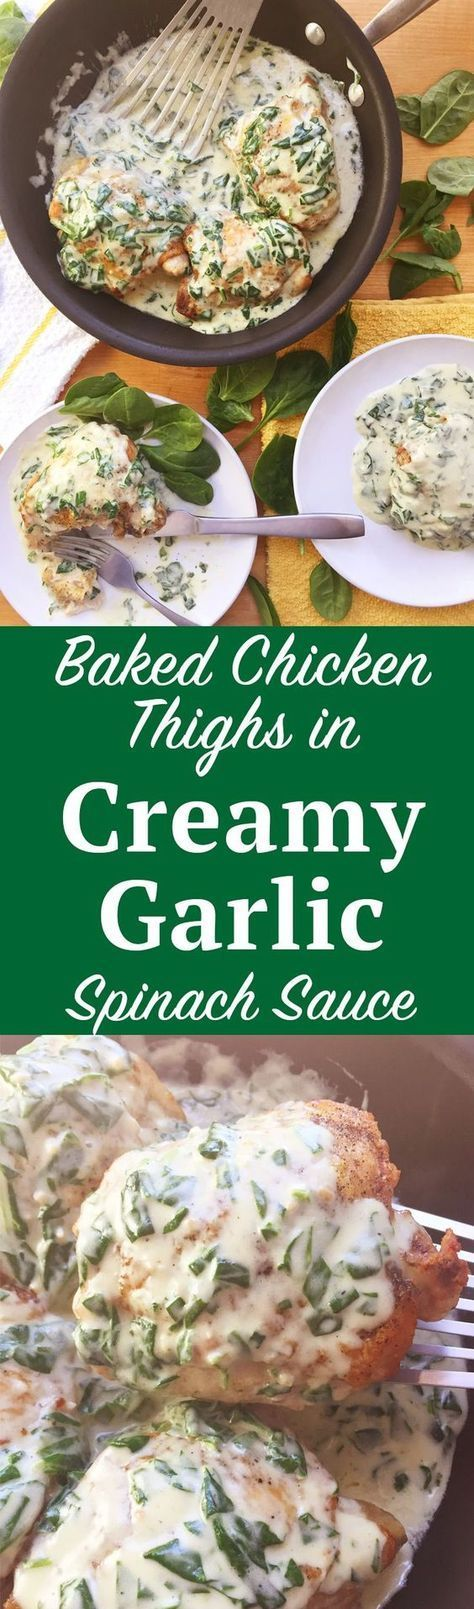 Baked Chicken Thighs with Creamy Garlic Spinach Sauce. A gourmet dinner in under 30 minutes? It's possible with this Baked Chicken Thigh recipe with Creamy Garlic Spinach Sauce. Click through for the instructions!   http://SeasonlyCreations.com   @Seasonlyblog